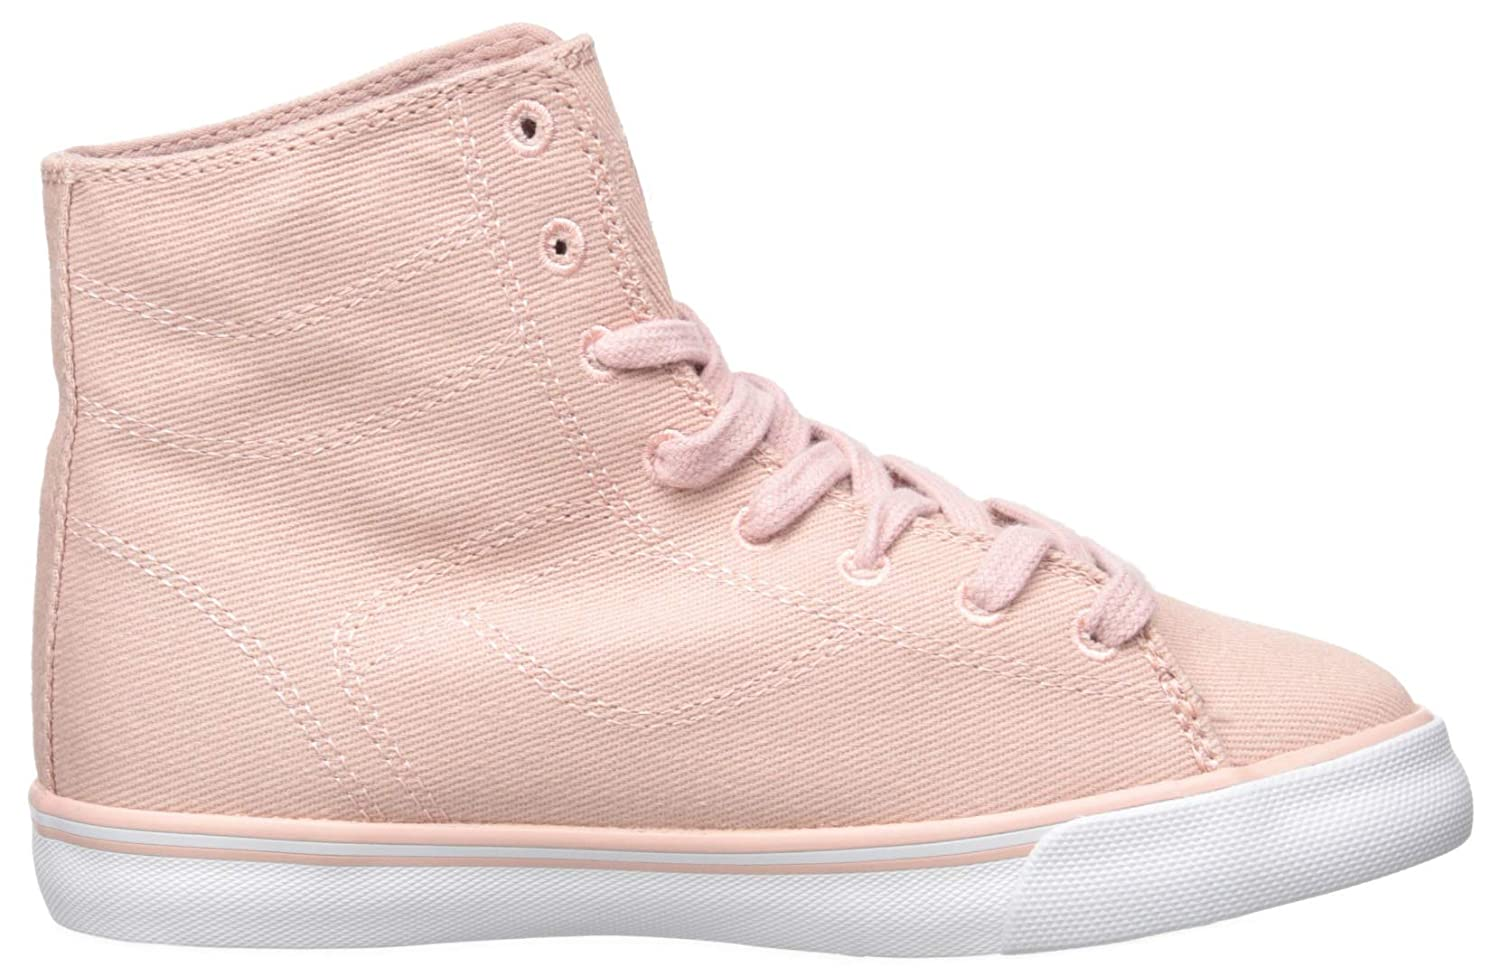 Cassatta Style Pastry Unisex Kids High-Top Fashion Sneakers